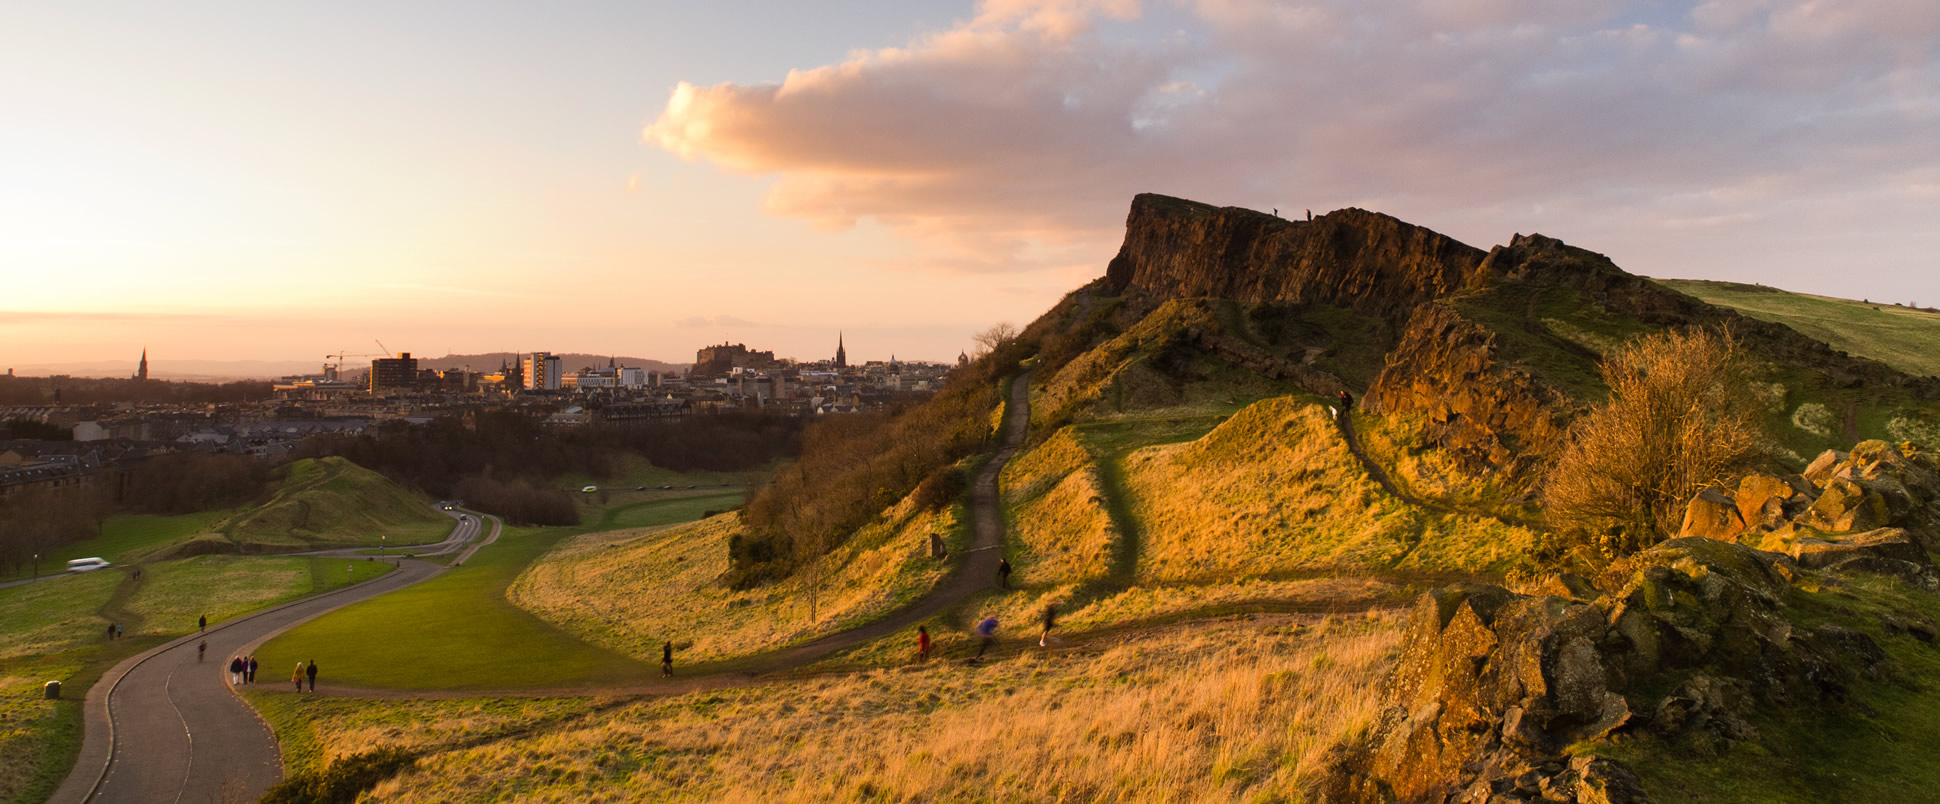 A picture of members of the public enjoying Holyrood Park at dusk.